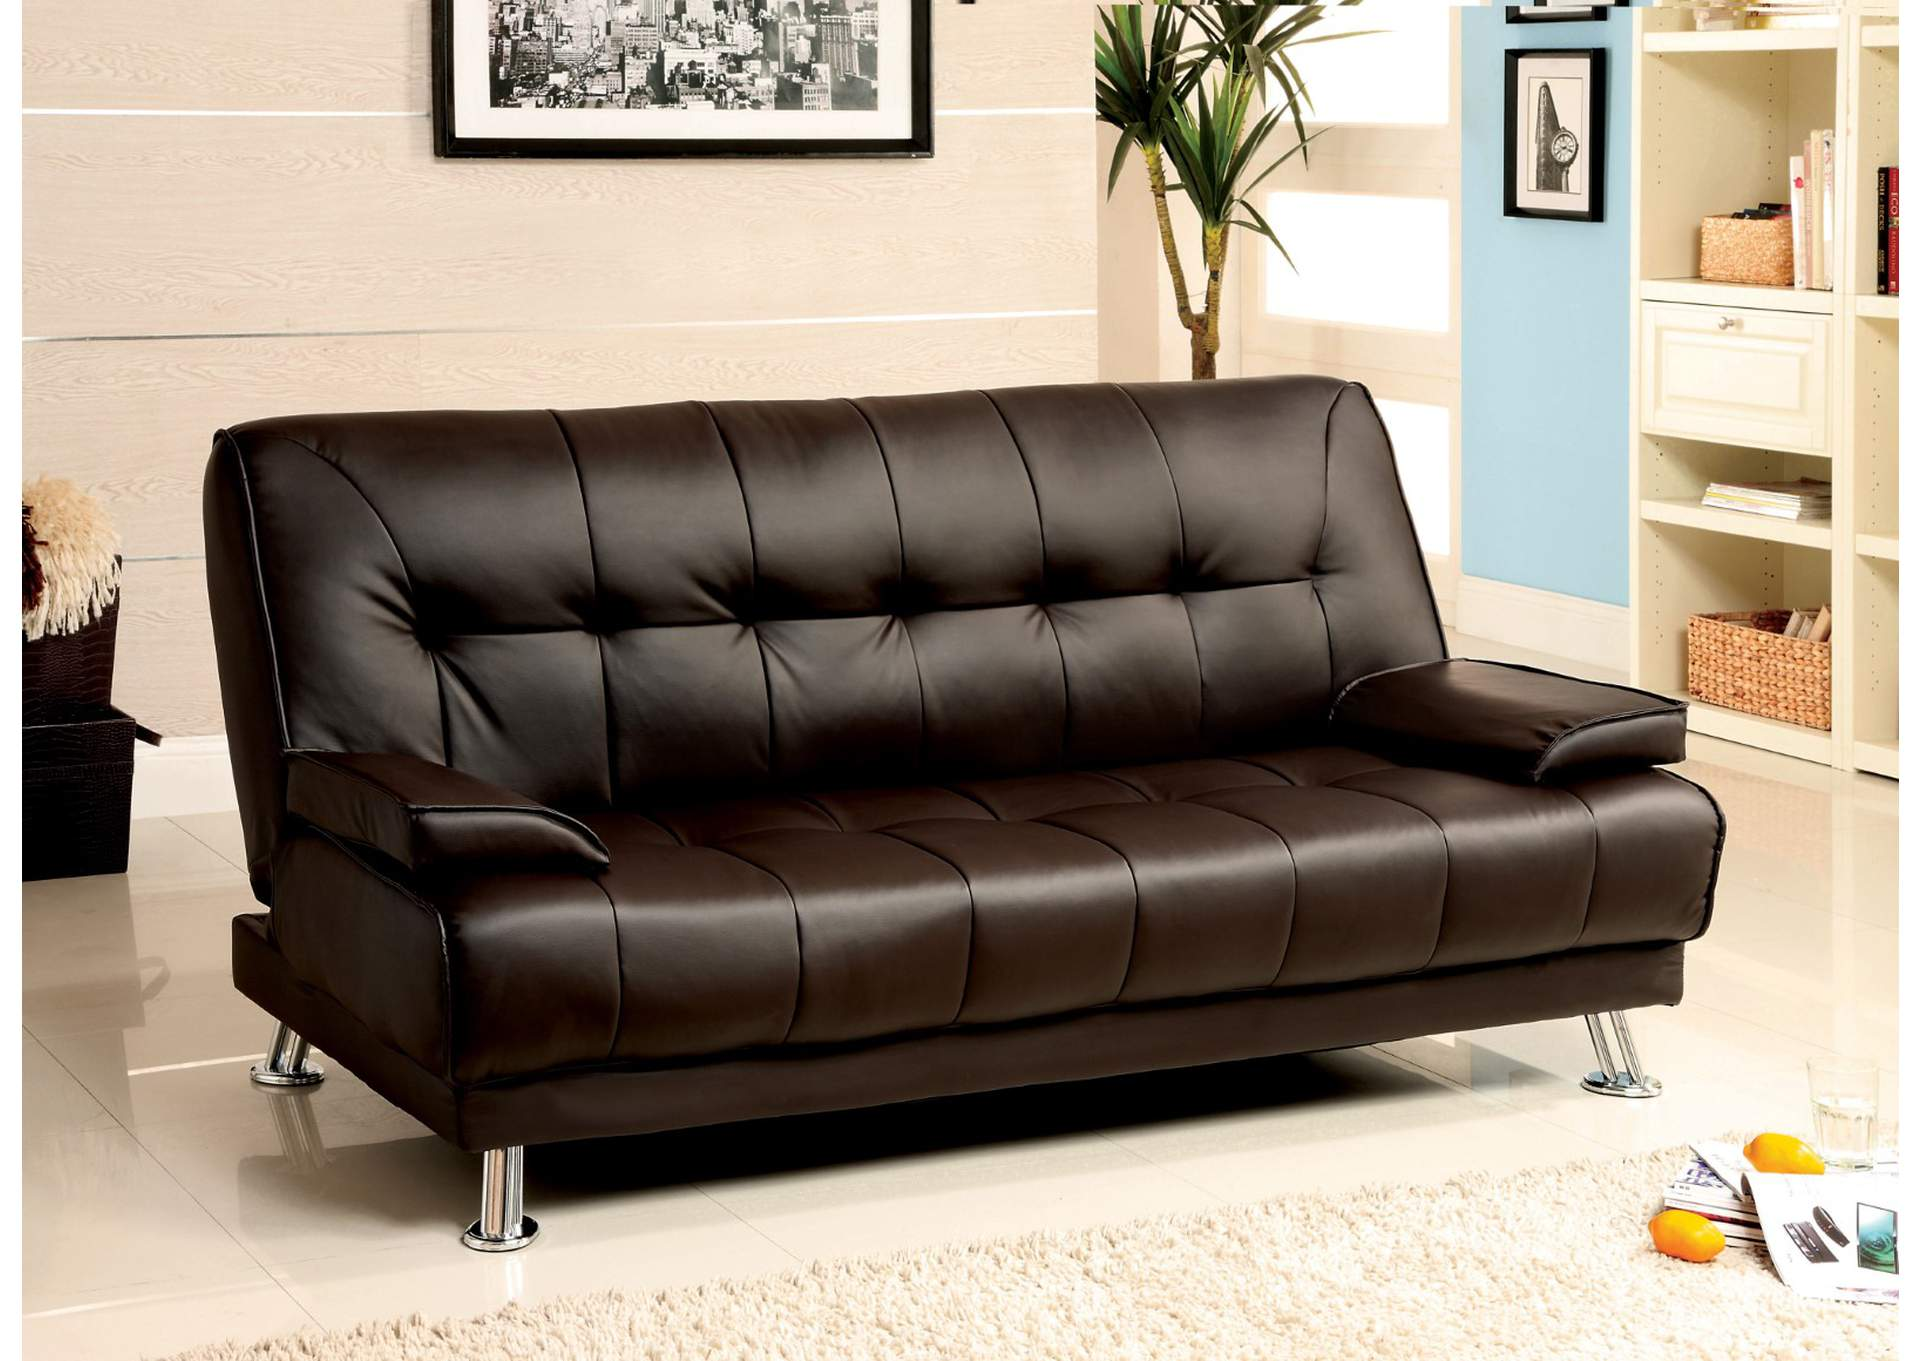 Furniture ville bronx ny beaumont dark brown leatherette for Furniture ville